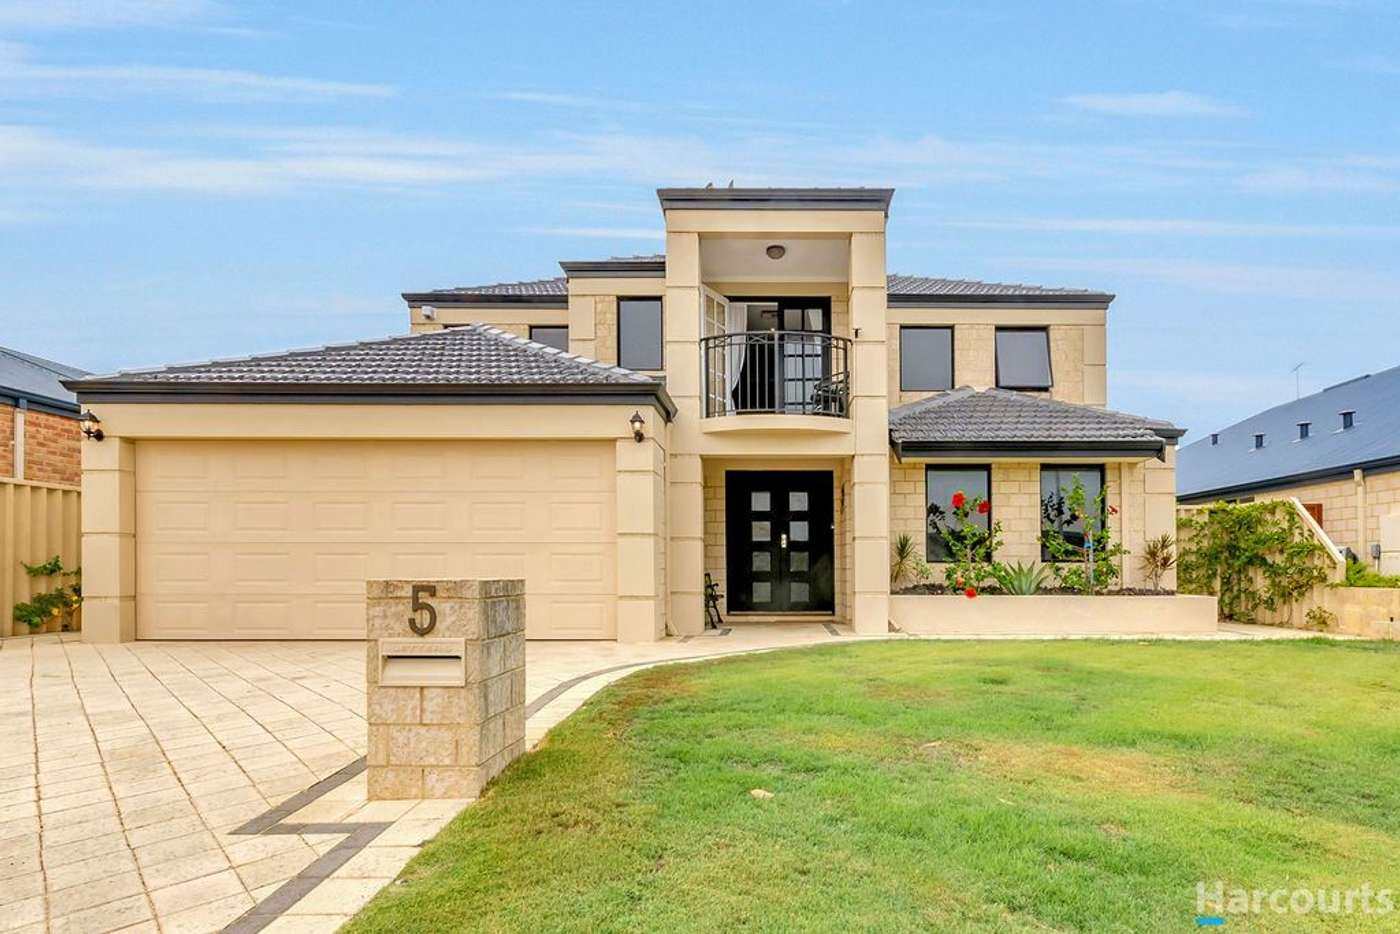 Main view of Homely house listing, 5 Stormbird Loop, Currambine WA 6028